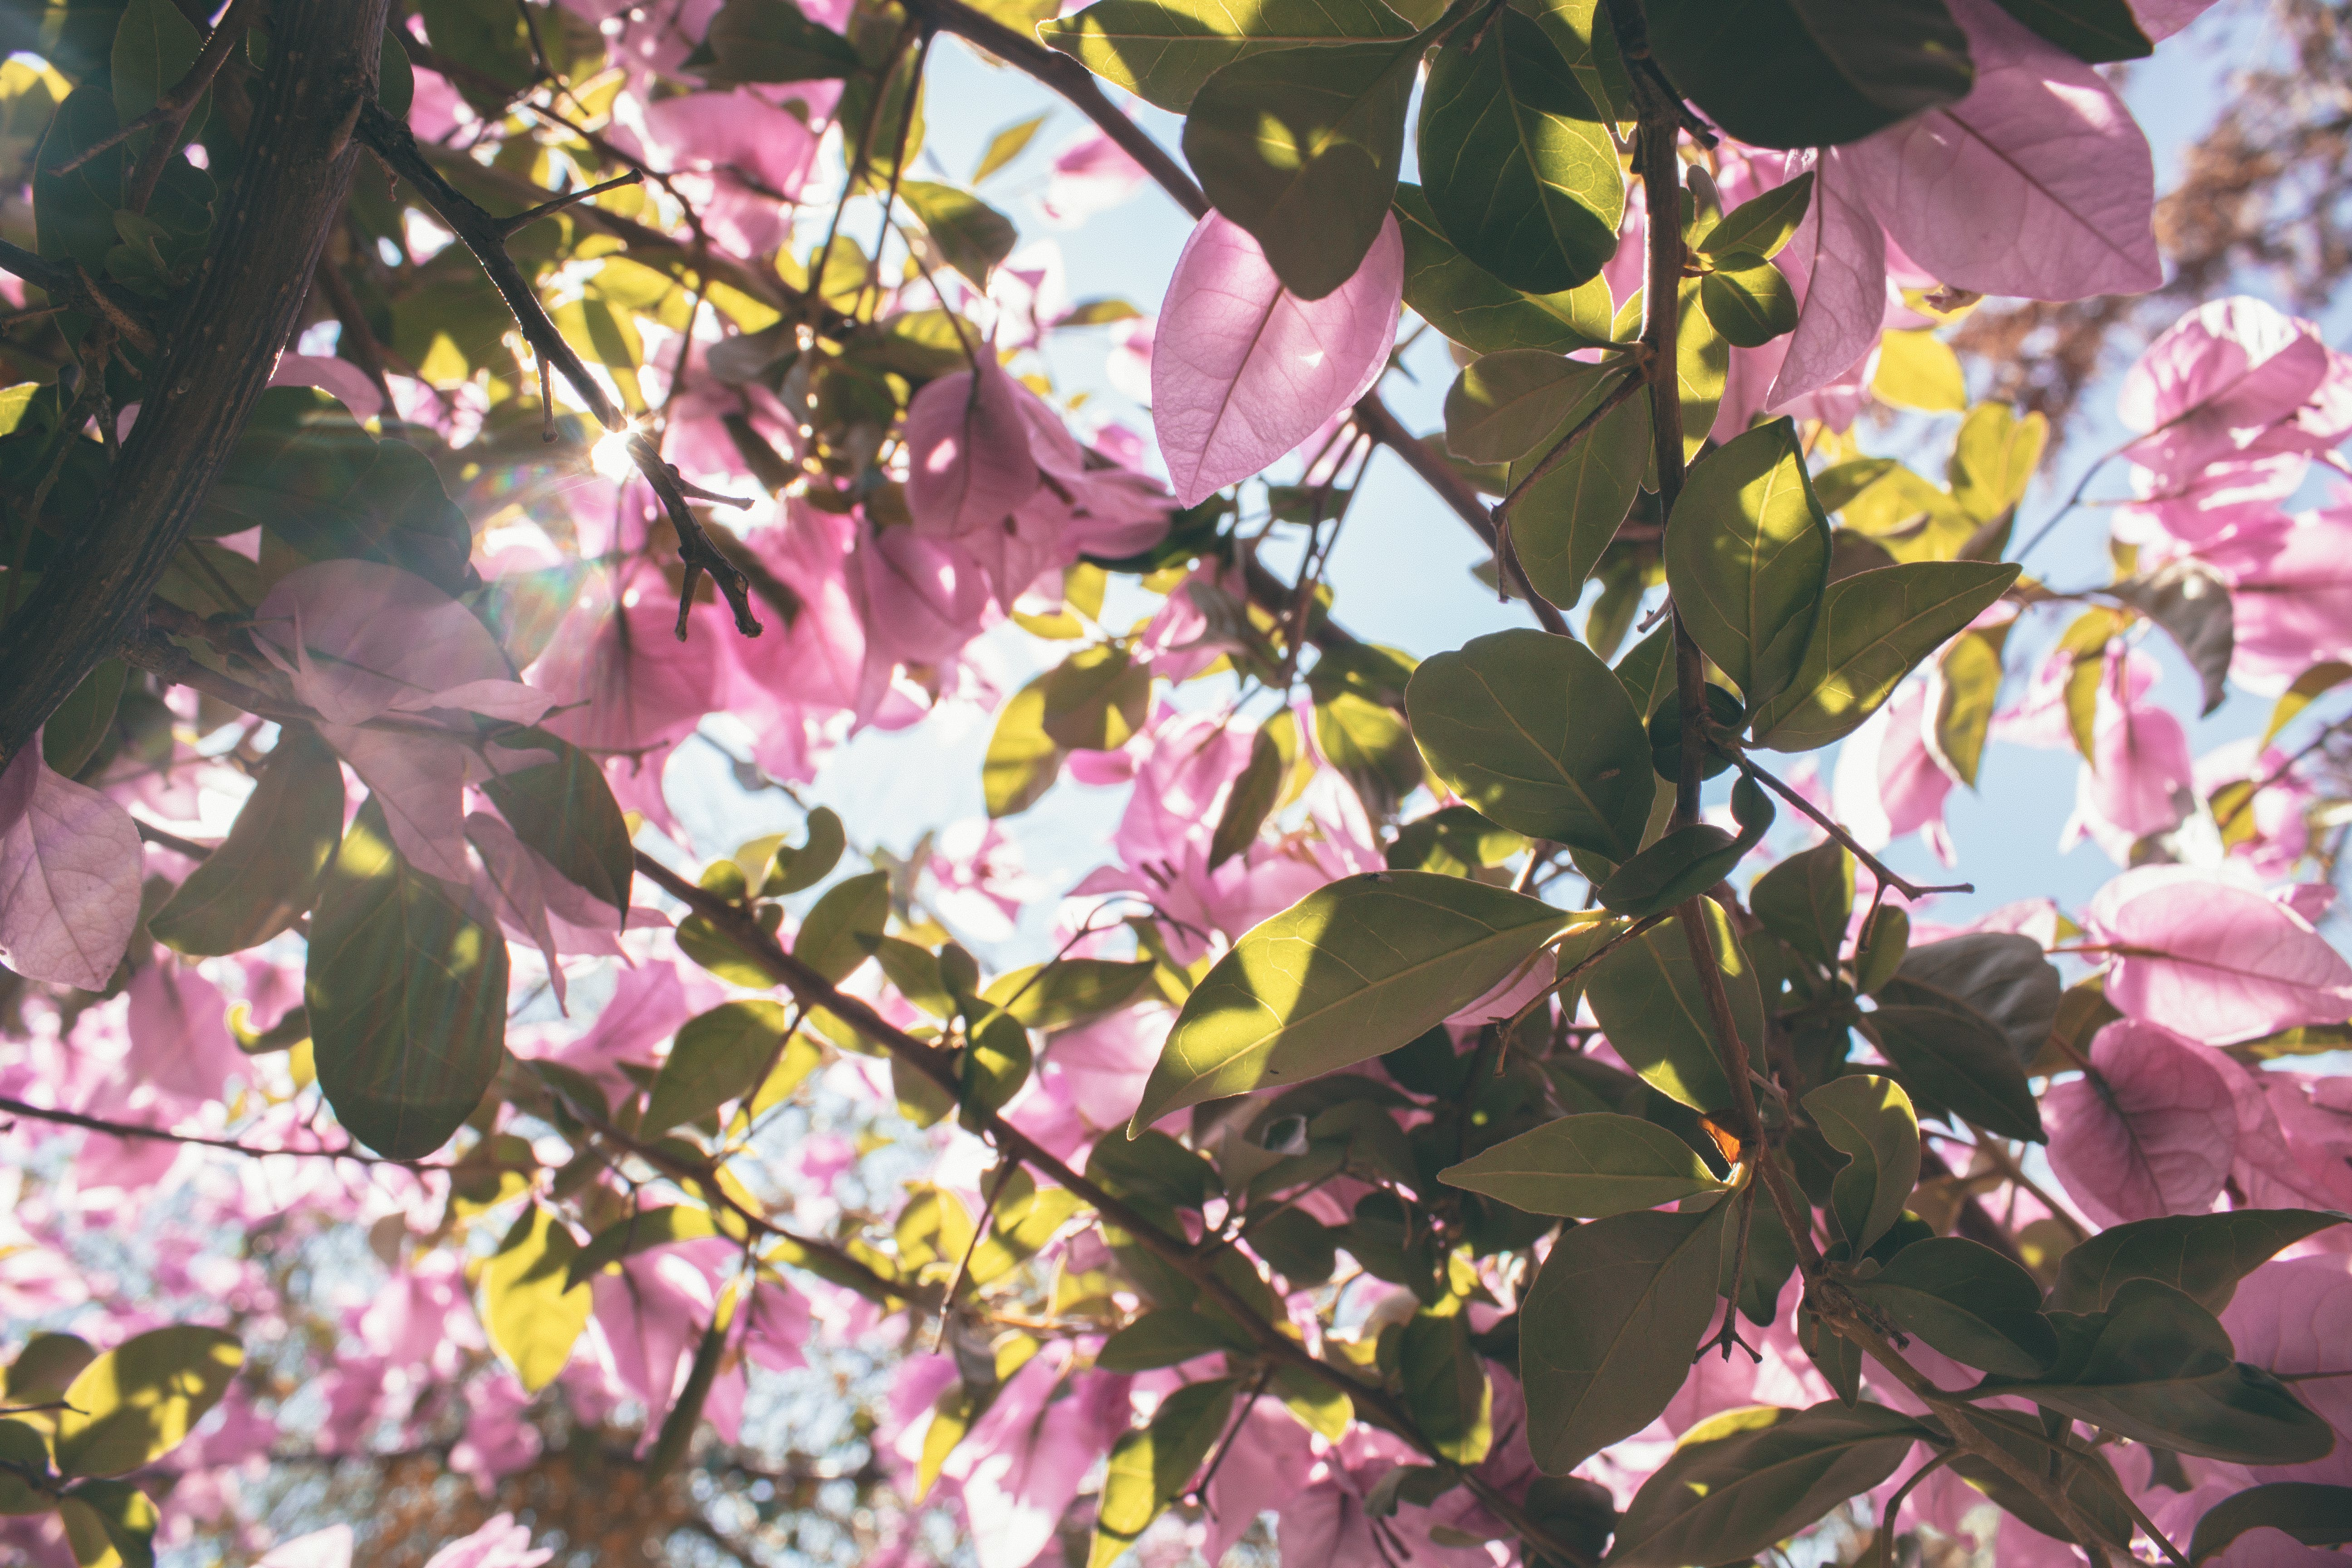 Low-angle Photography of Pink Petaled Flowers at Daytime